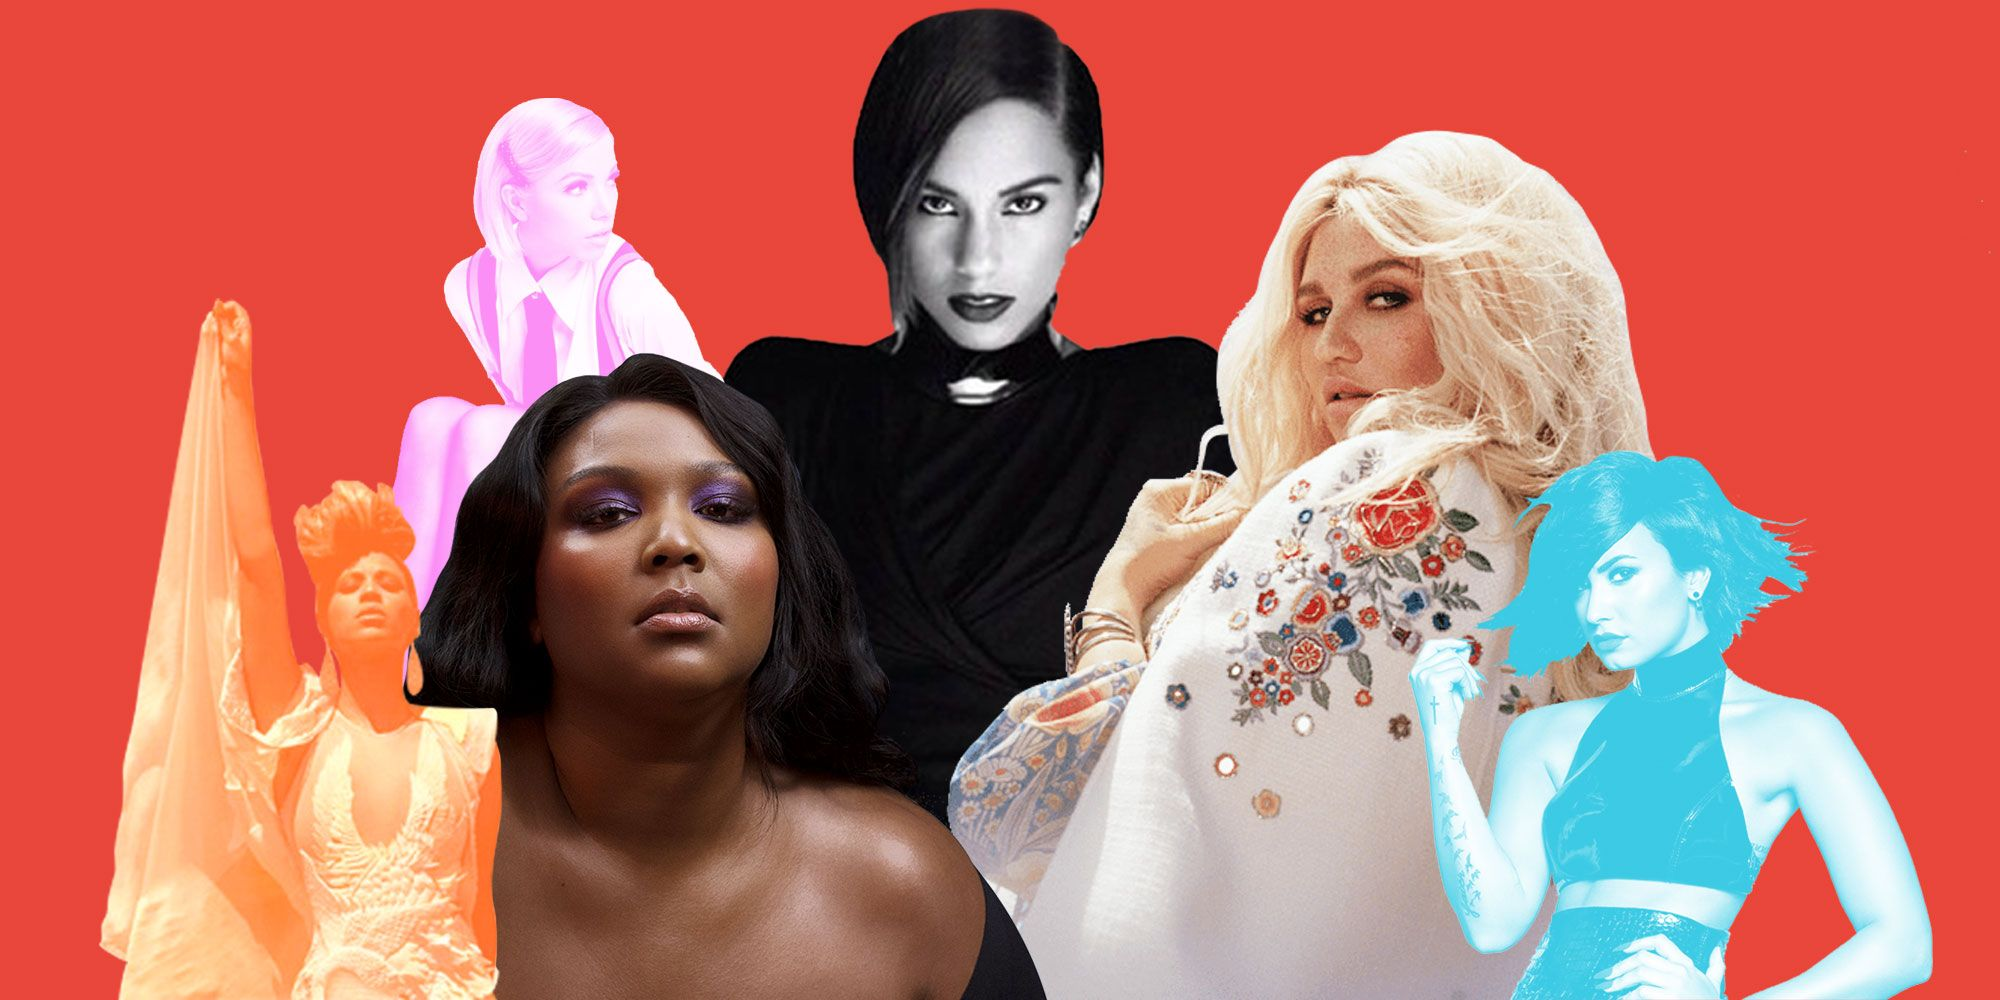 These 12 Bops Are the Very Best Feminist Anthems